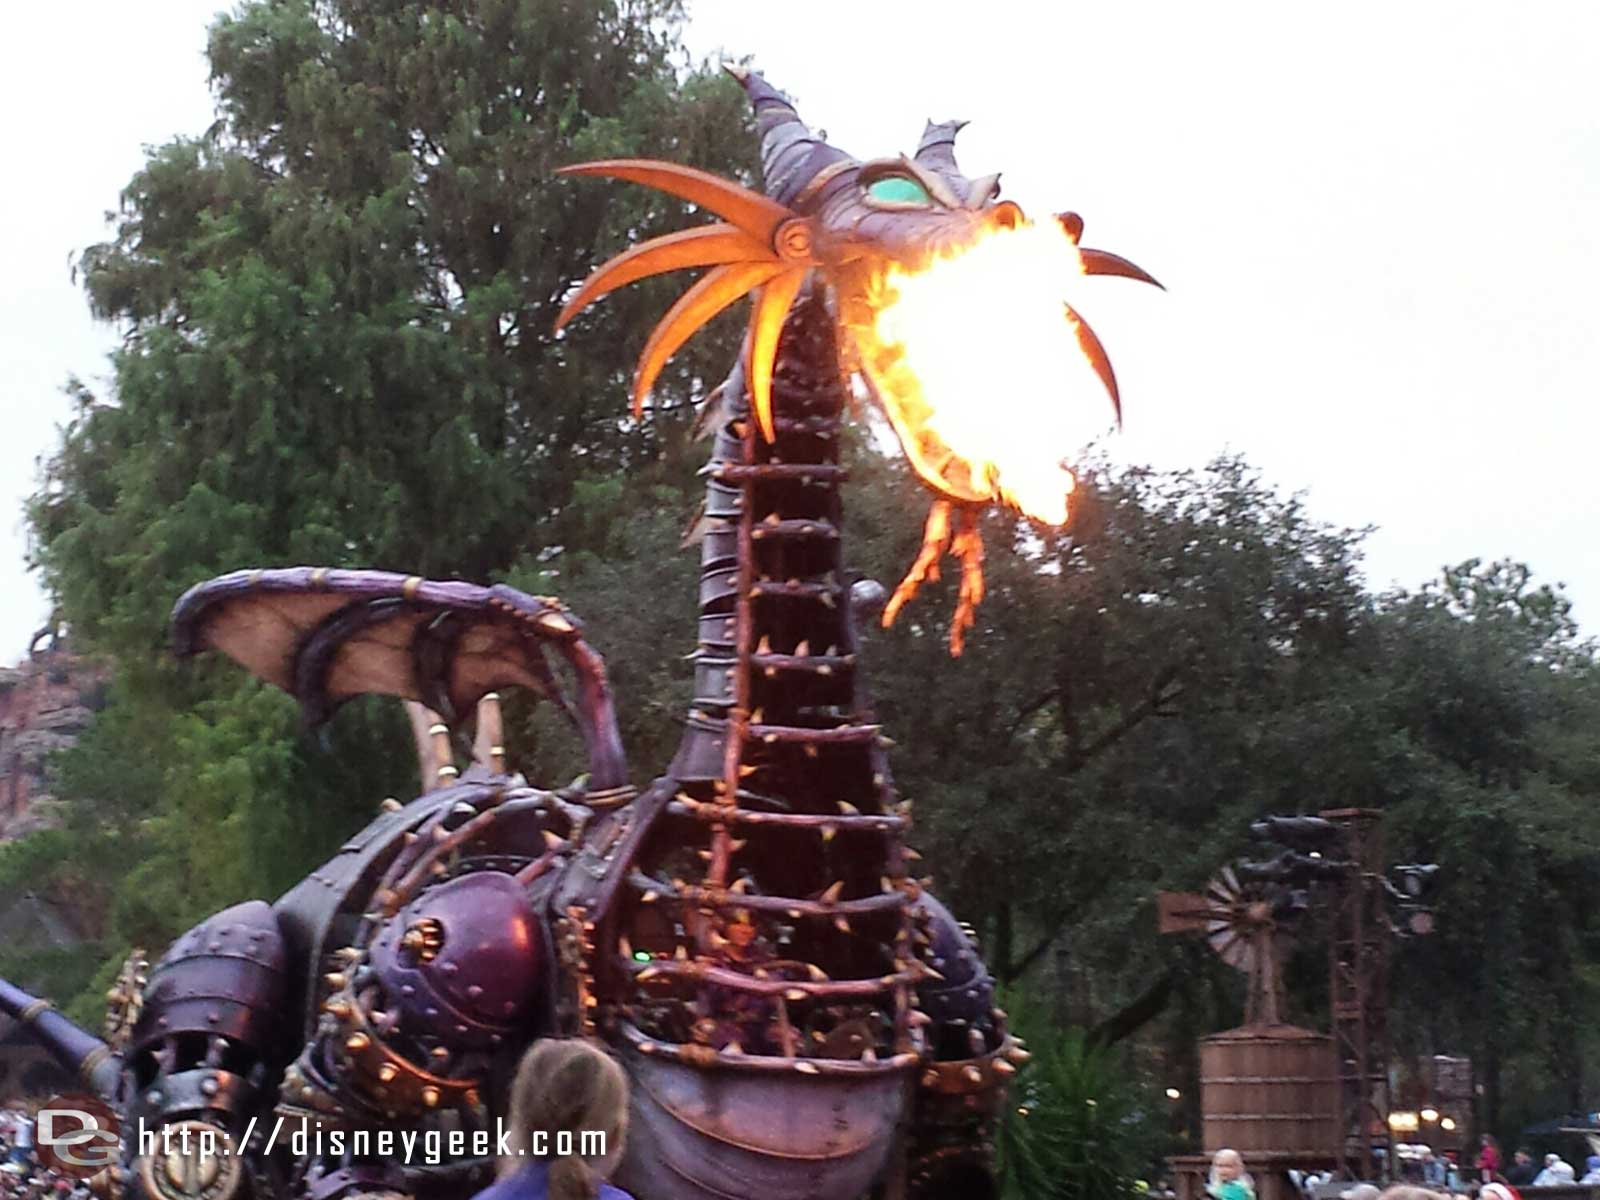 Maleficent with a mouth full of fire – Festival of Fantasy – #WDW